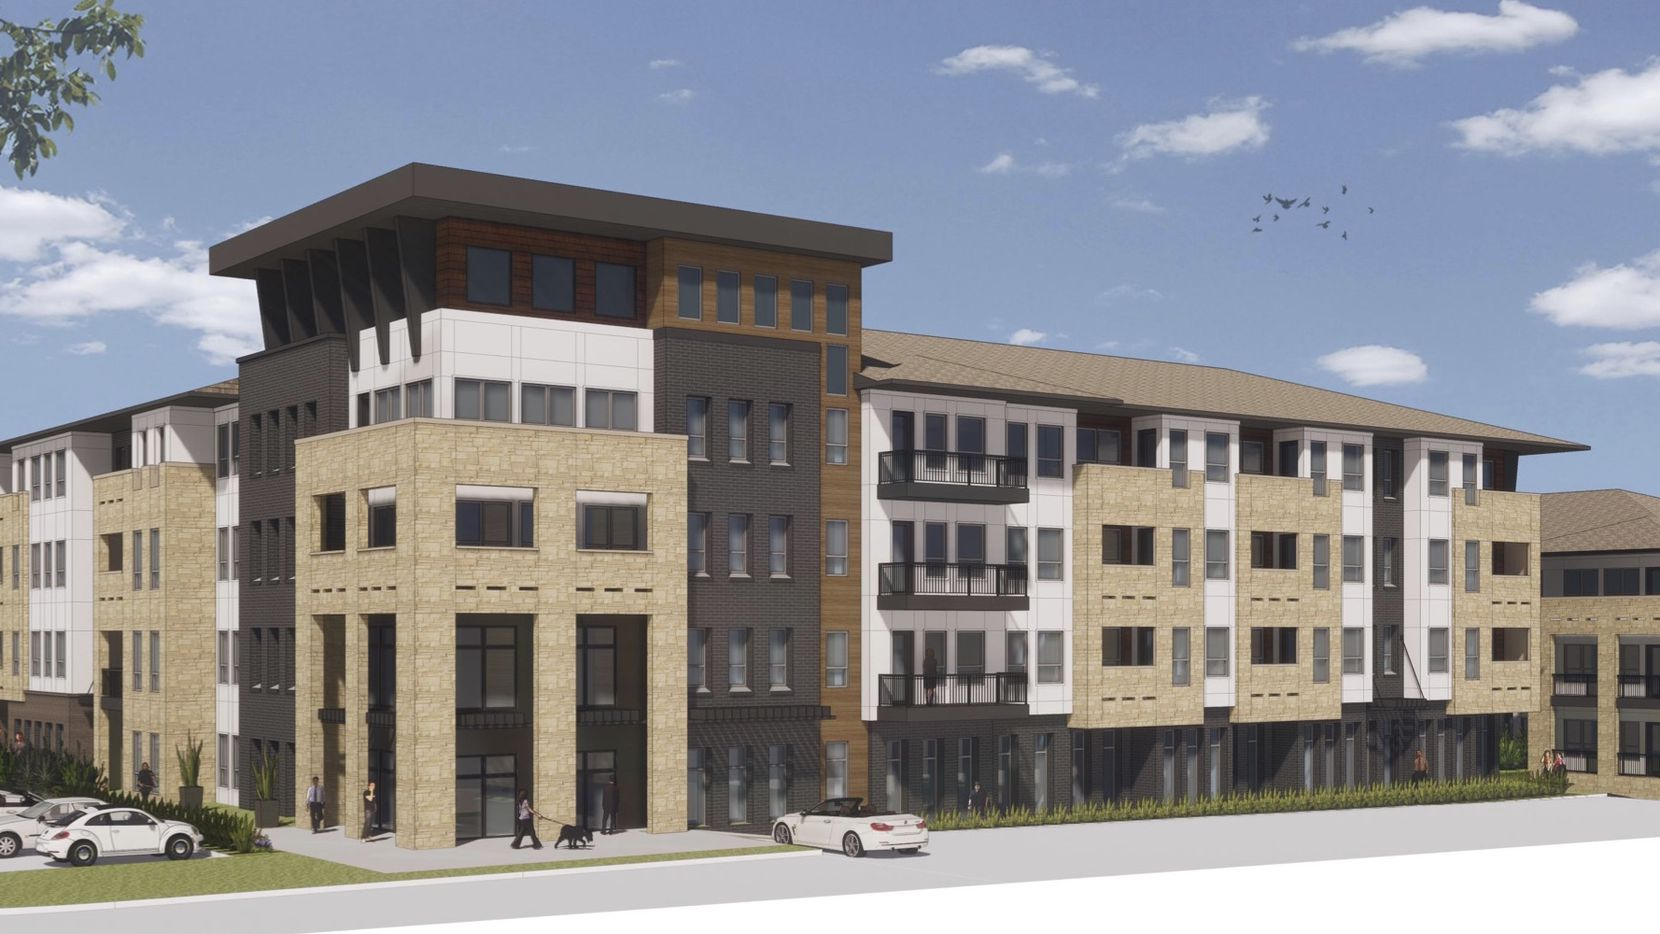 The Jefferson Texas Plaza II apartments will open in 2022.